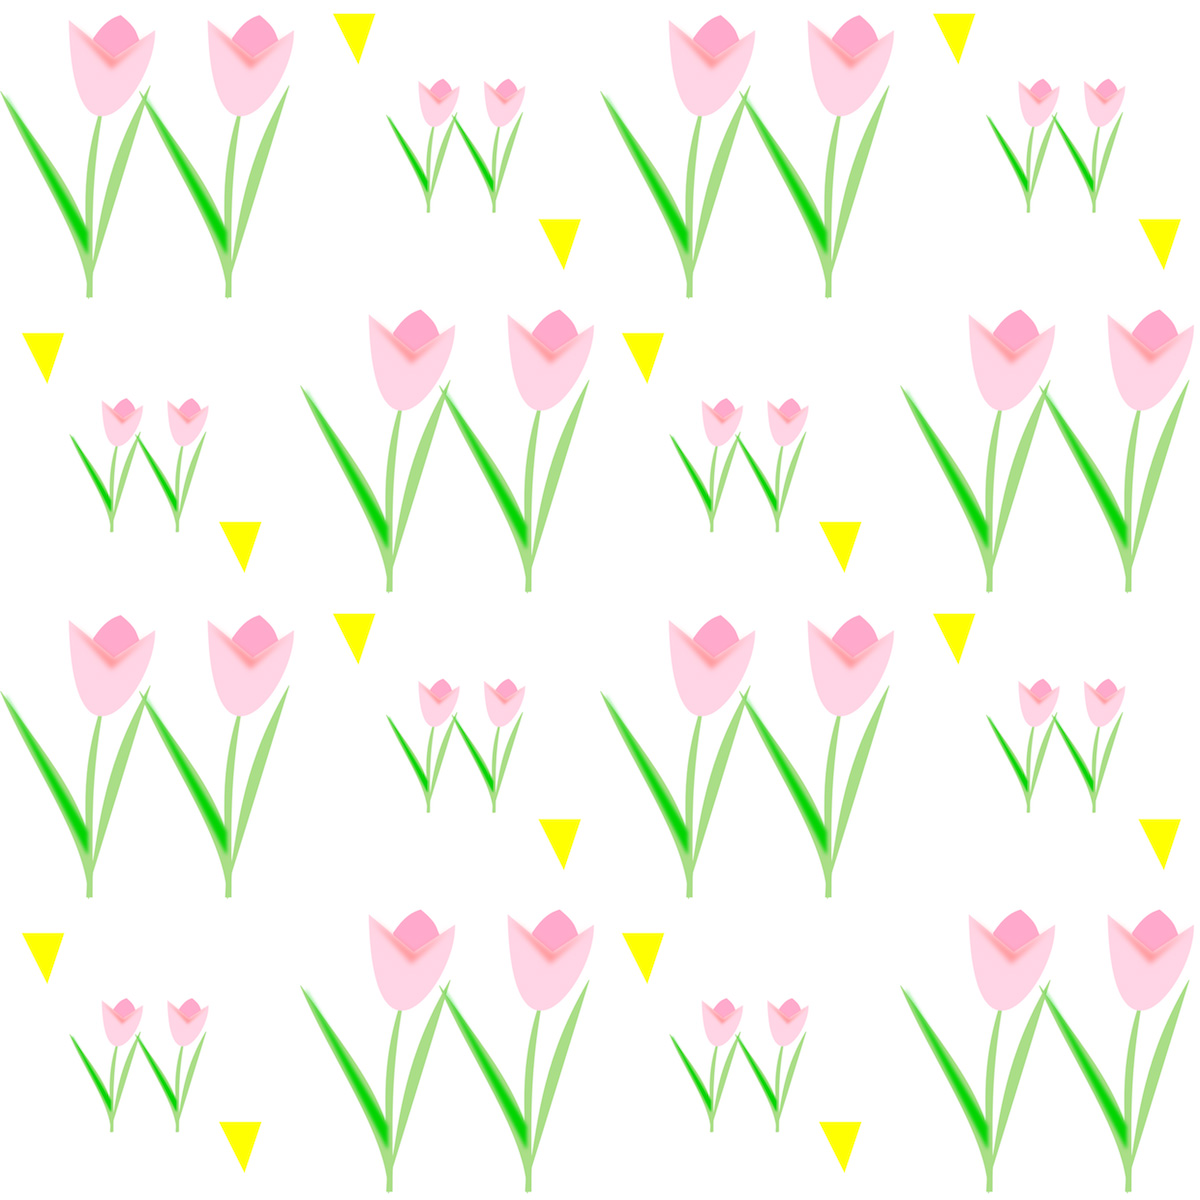 graphic about Tulip Pattern Printable identify Absolutely free printable spring tulip sbooking paper